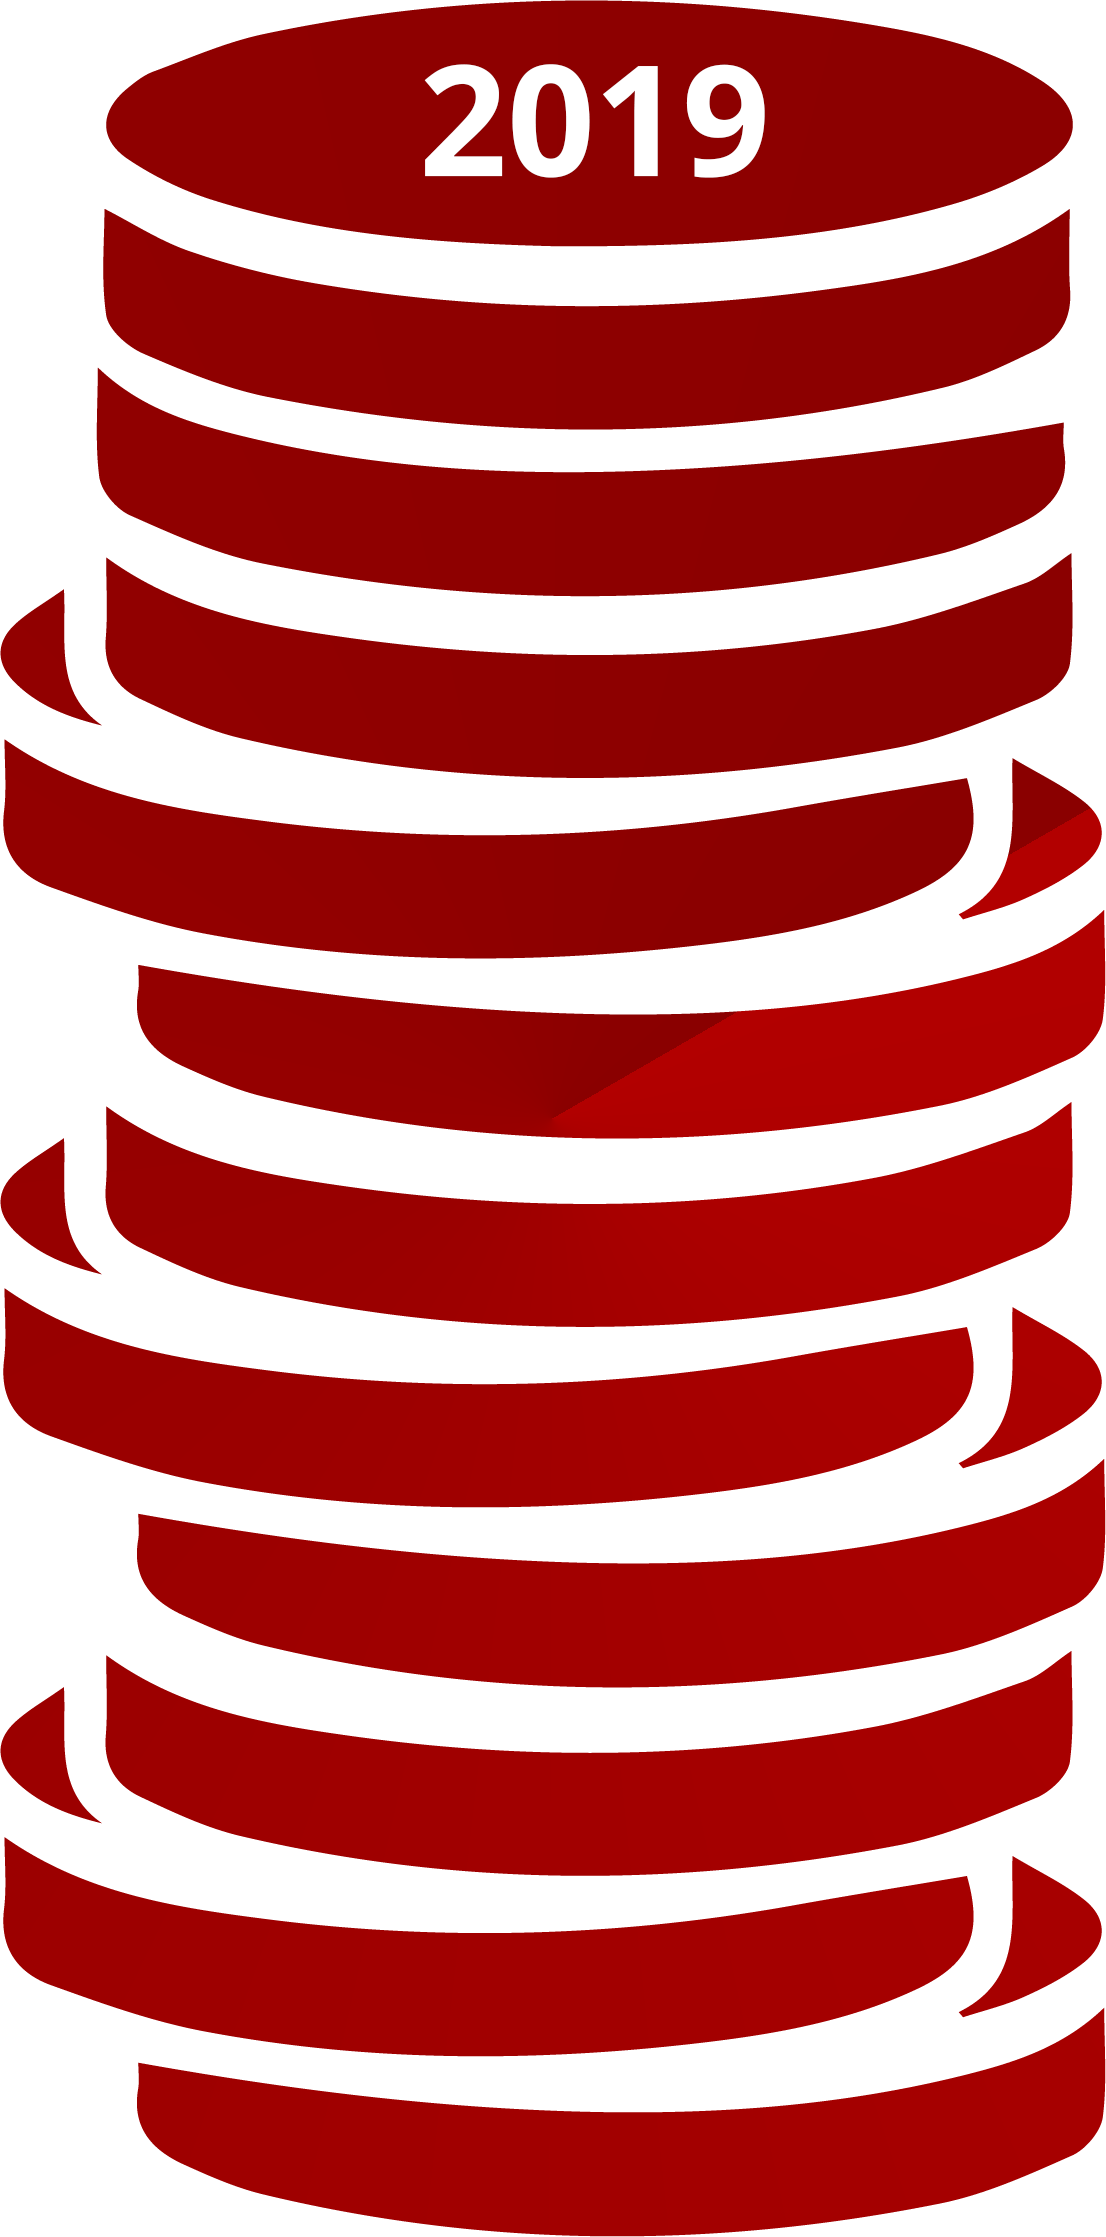 illustration of a stack of coins dated 2019